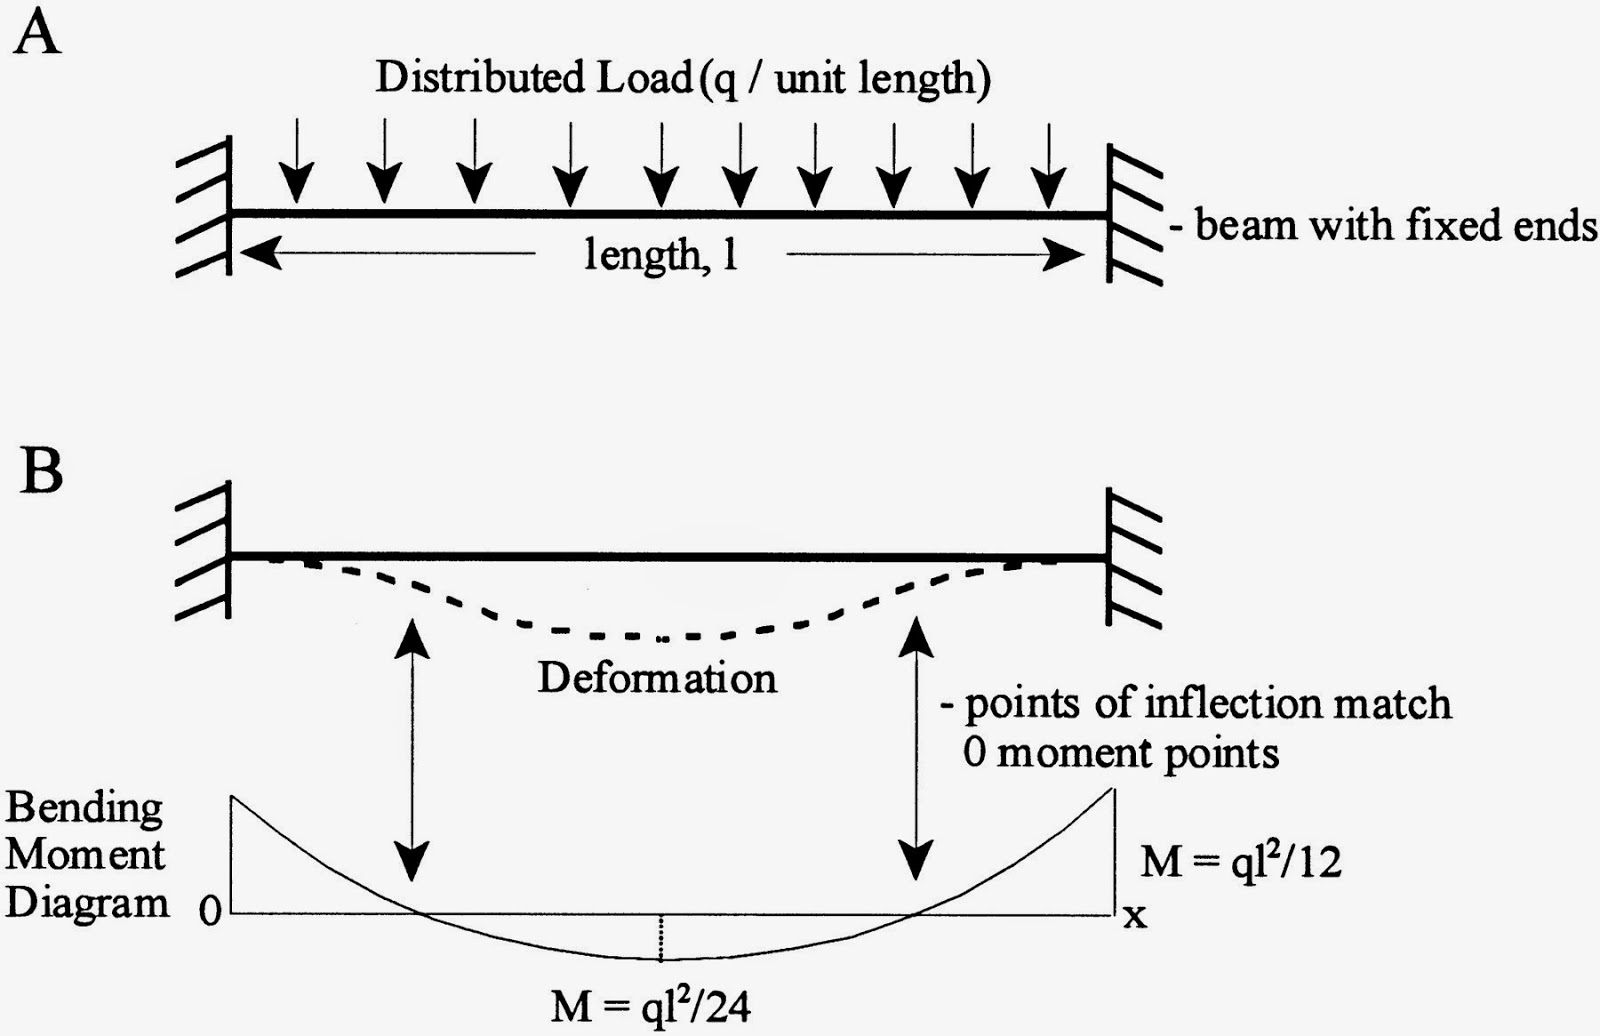 The Elastic Bending Effect Draw Shear Force And Moment Diagrams For Beam Shownin Point Of Inflection